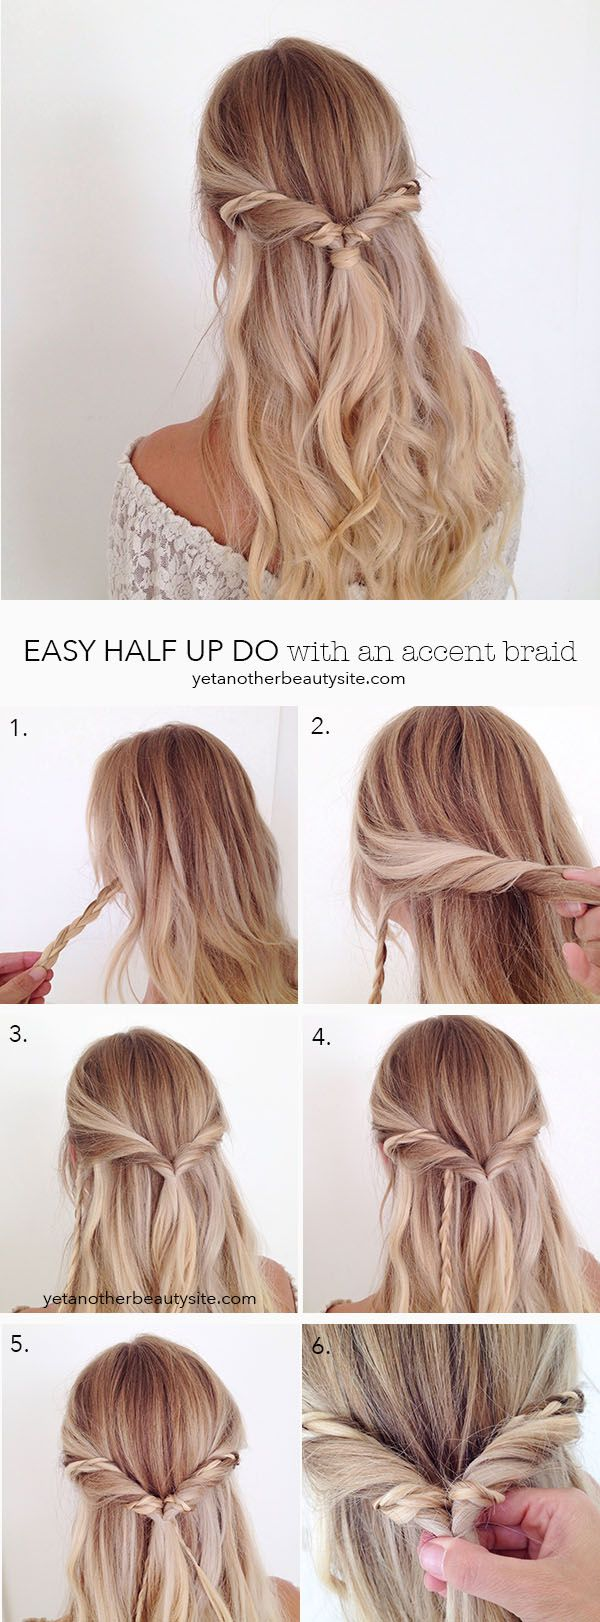 Easy half up hairdo hairstyles pinterest easy hair style and